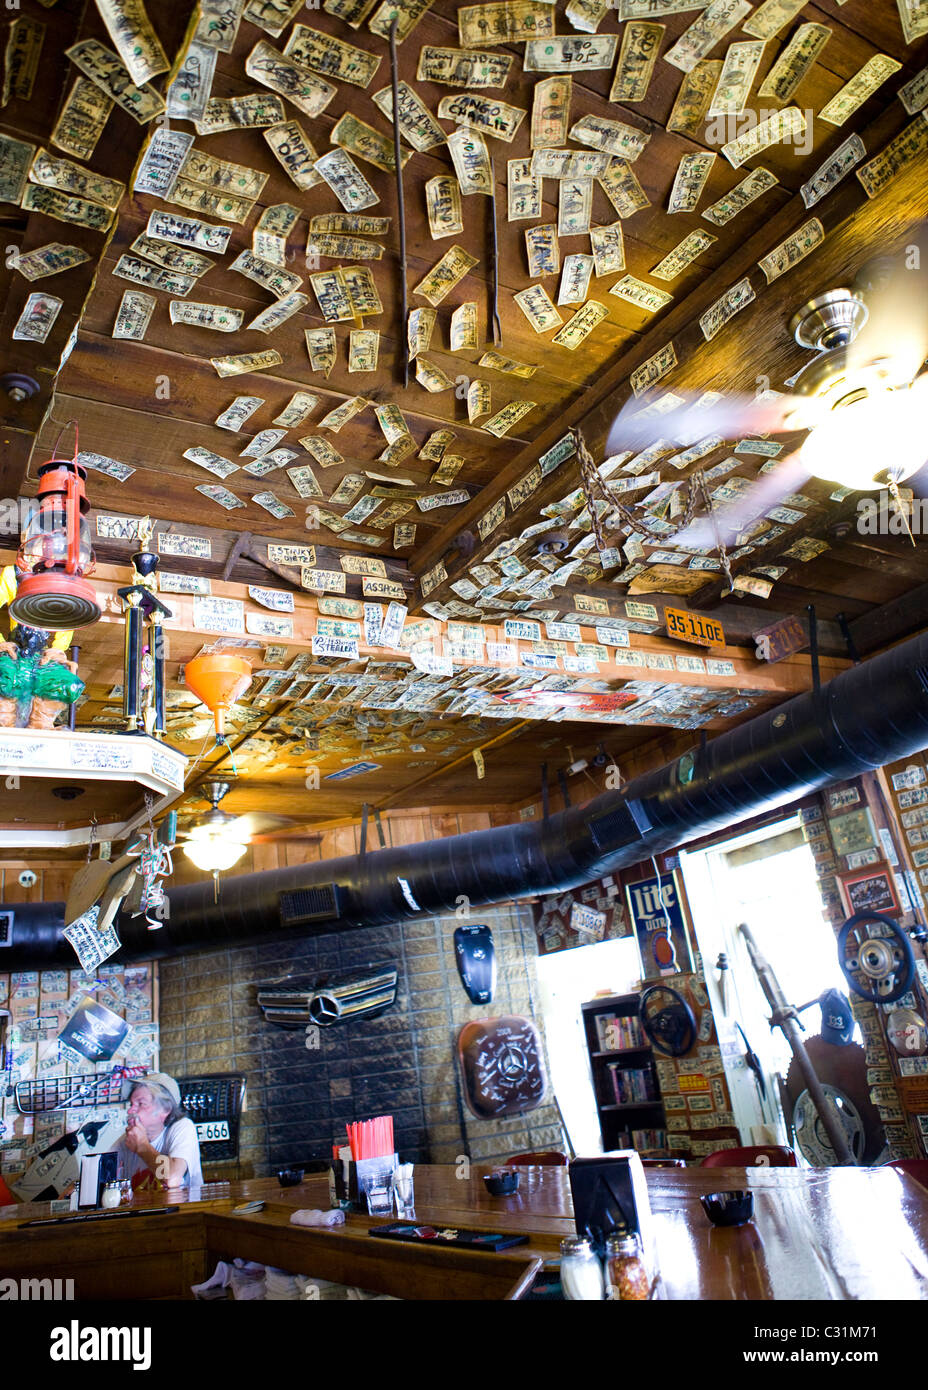 Signed one dollar bills tacked on the ceiling and walls of western bar - Stock Image